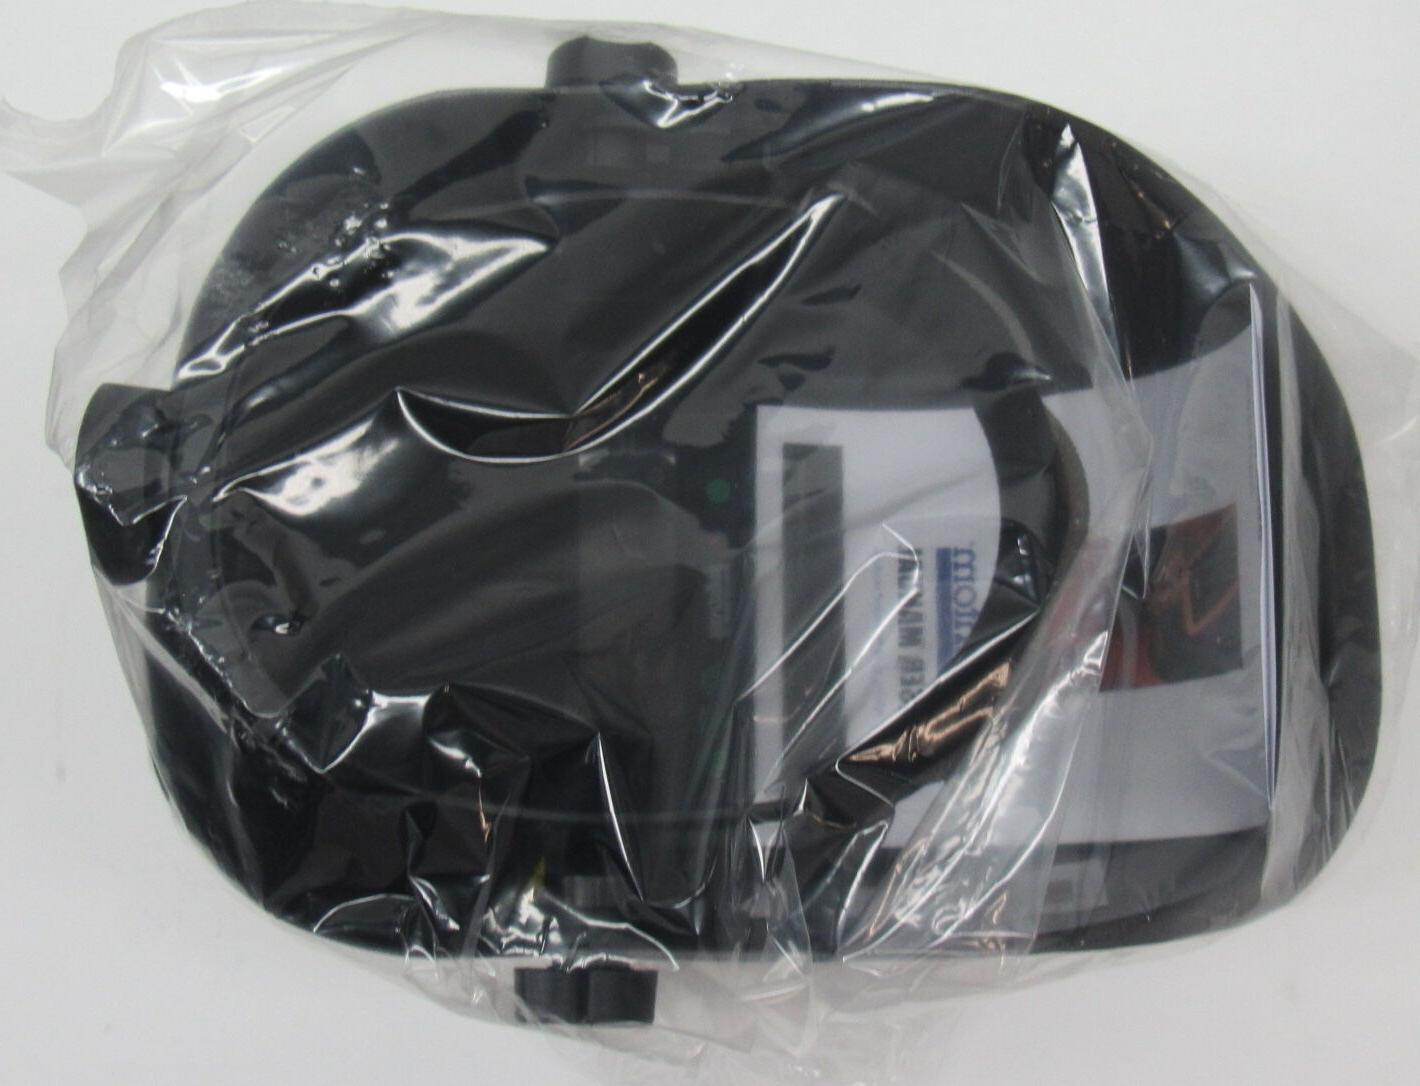 NEW 290 Series Auto-Darkening Helmet Super Kool Silver ++